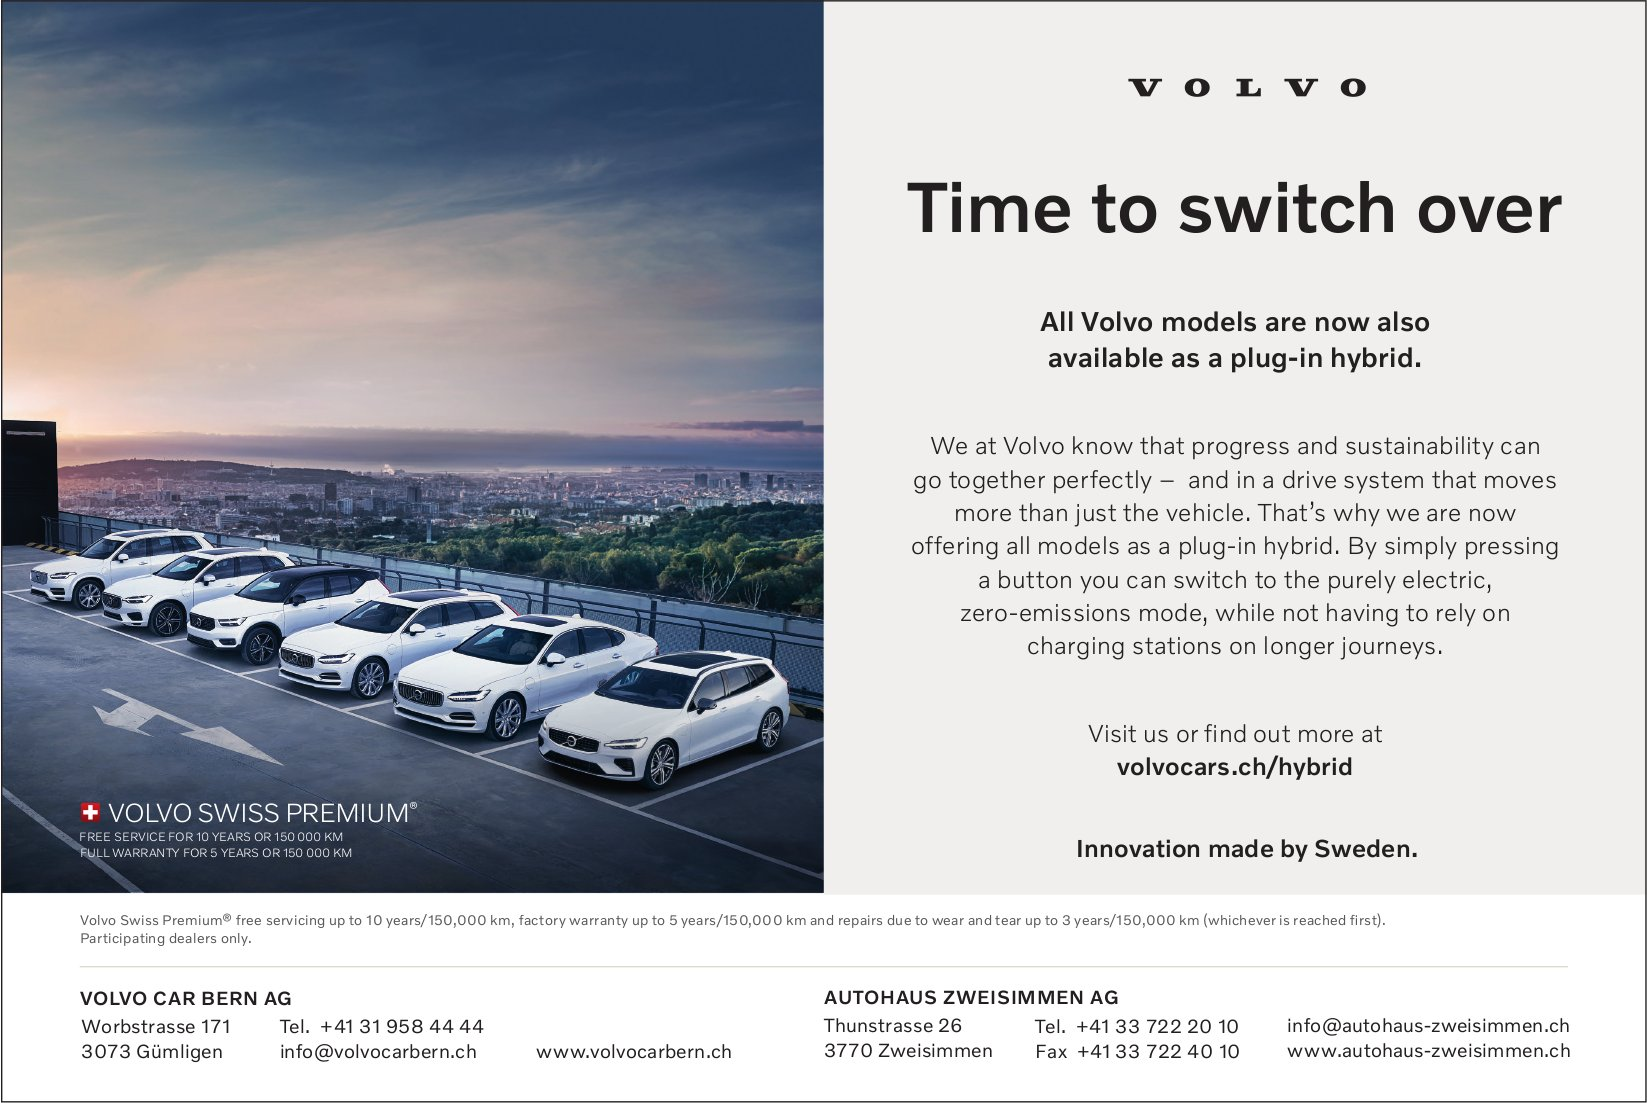 Volvo - Time to switch over